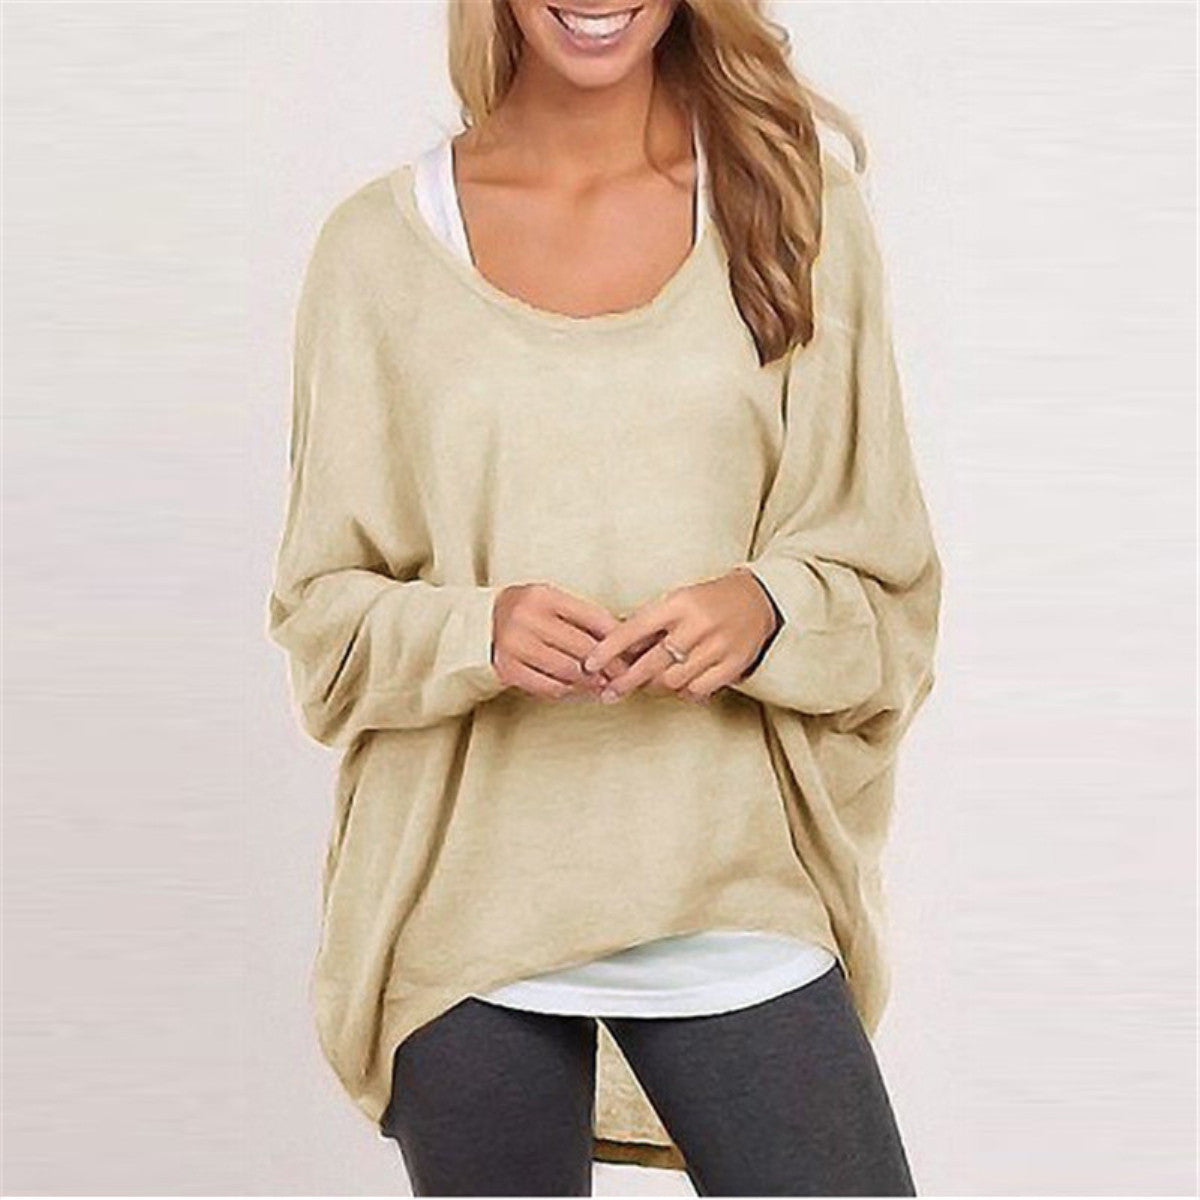 Beige / XXLWomen Sweater Jumper Pullover Batwing Long Sleeve Casual Loose Solid Blouse Shirt Top Plus